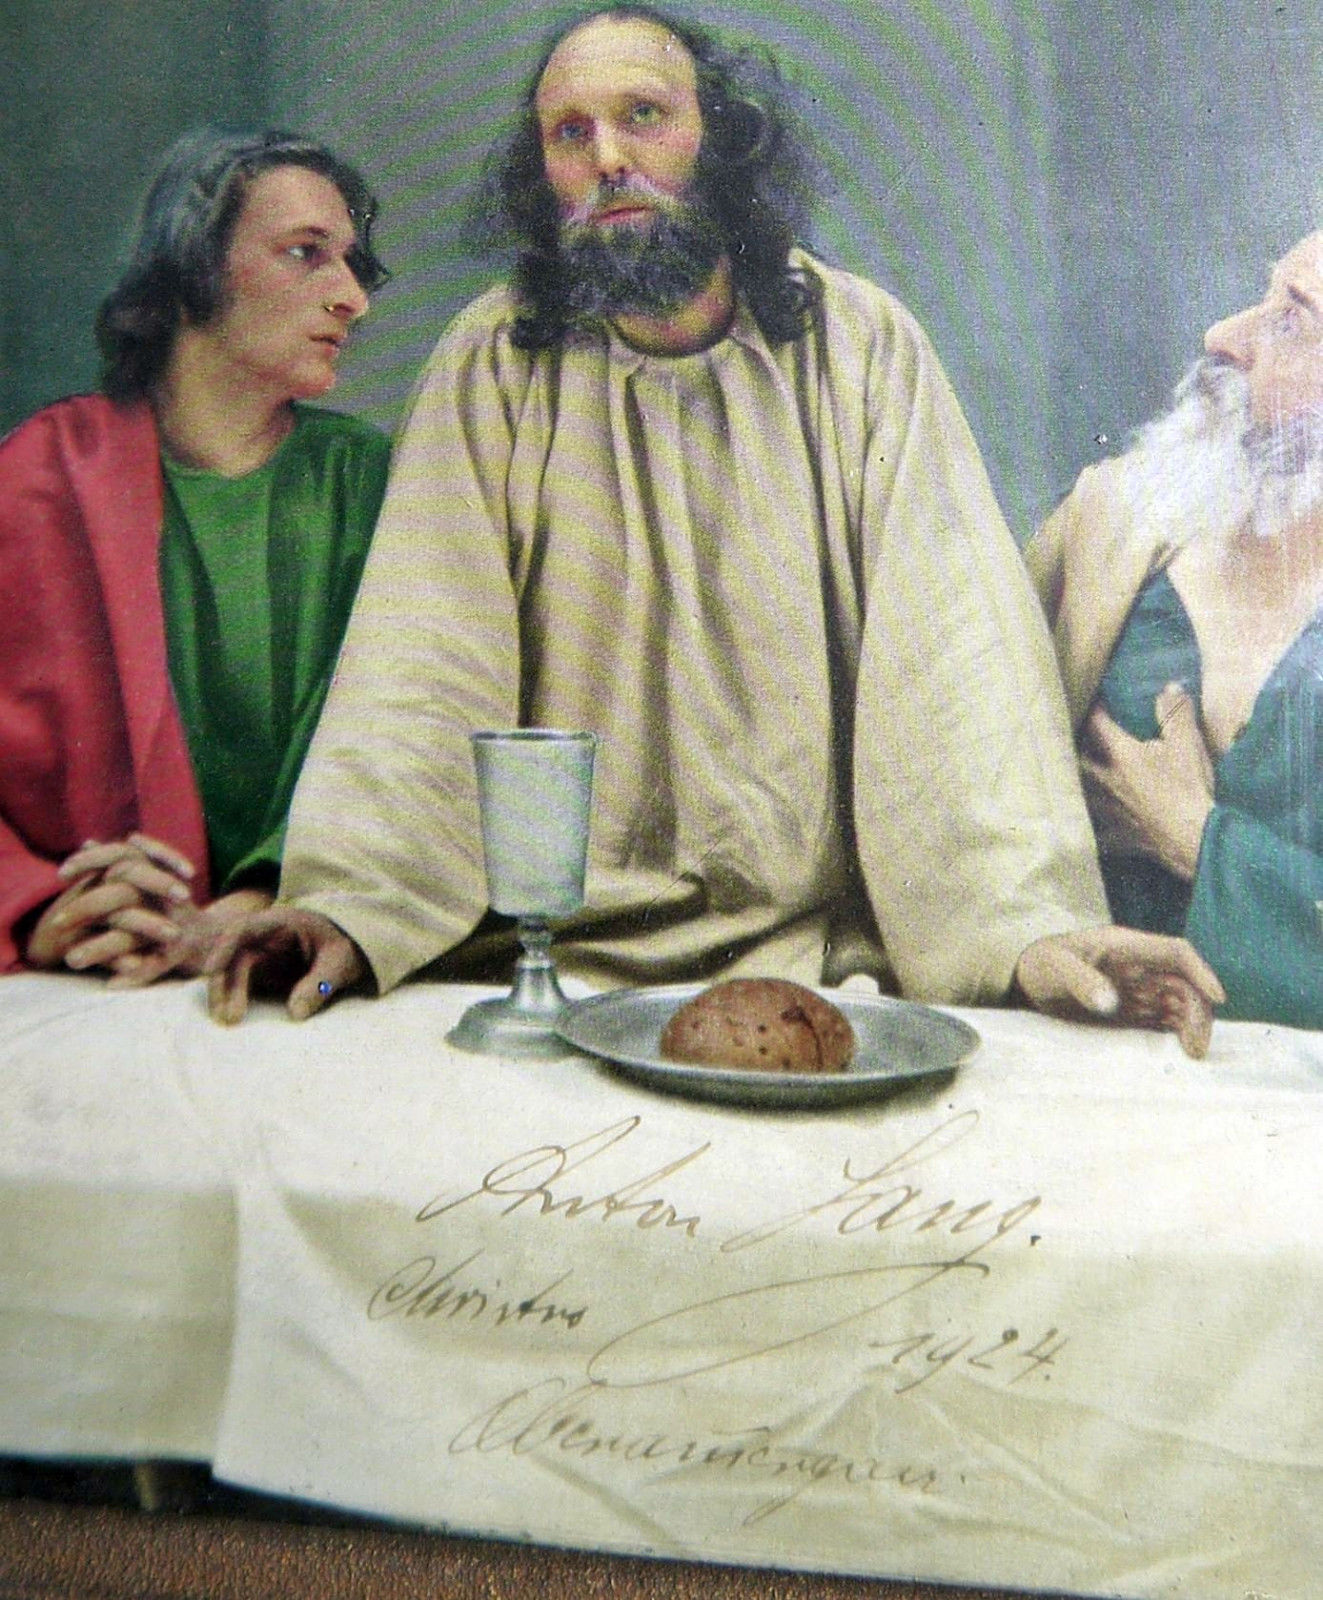 1924 Actor Anton Lang Abendmahlszene Oberammergau Passion Play hand signed 8x10